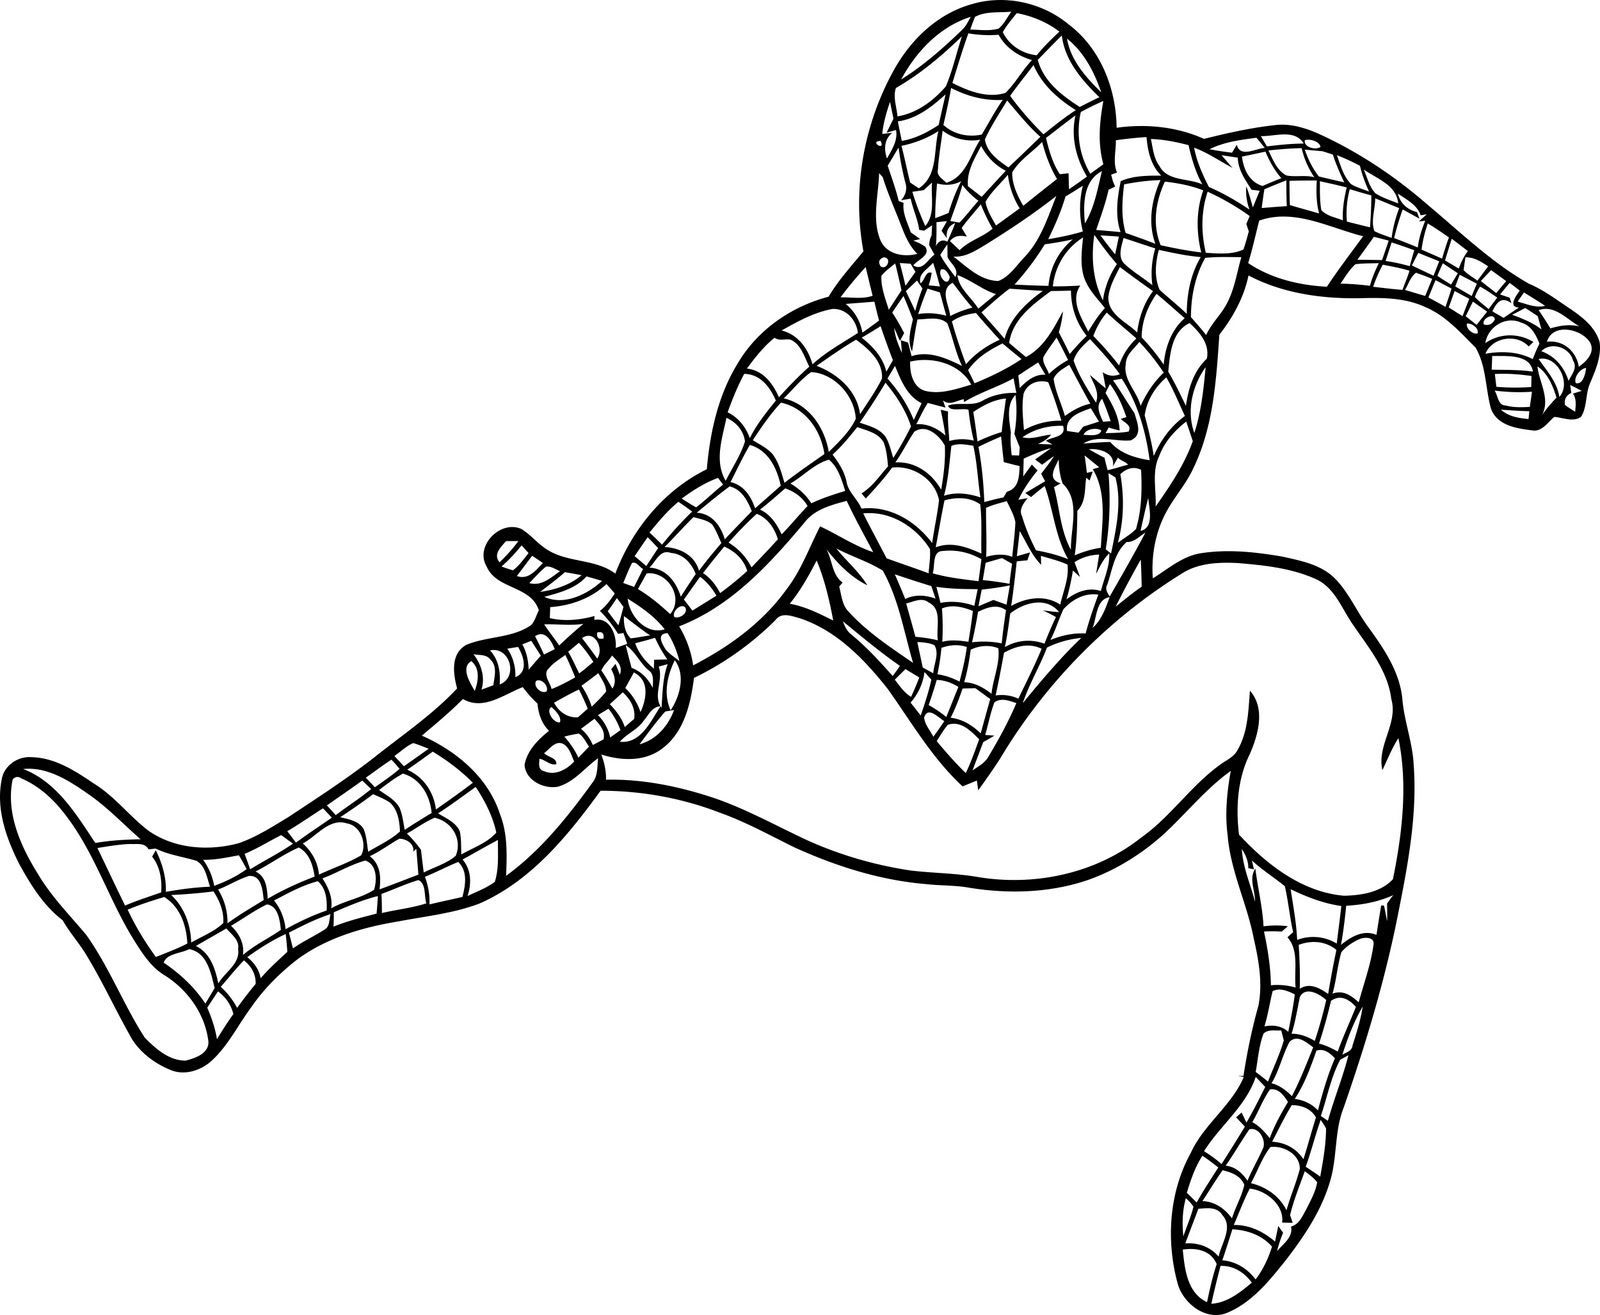 Printable Spiderman Coloring Pages Superhero Coloring Pages Lego Coloring Pages Spiderman Coloring